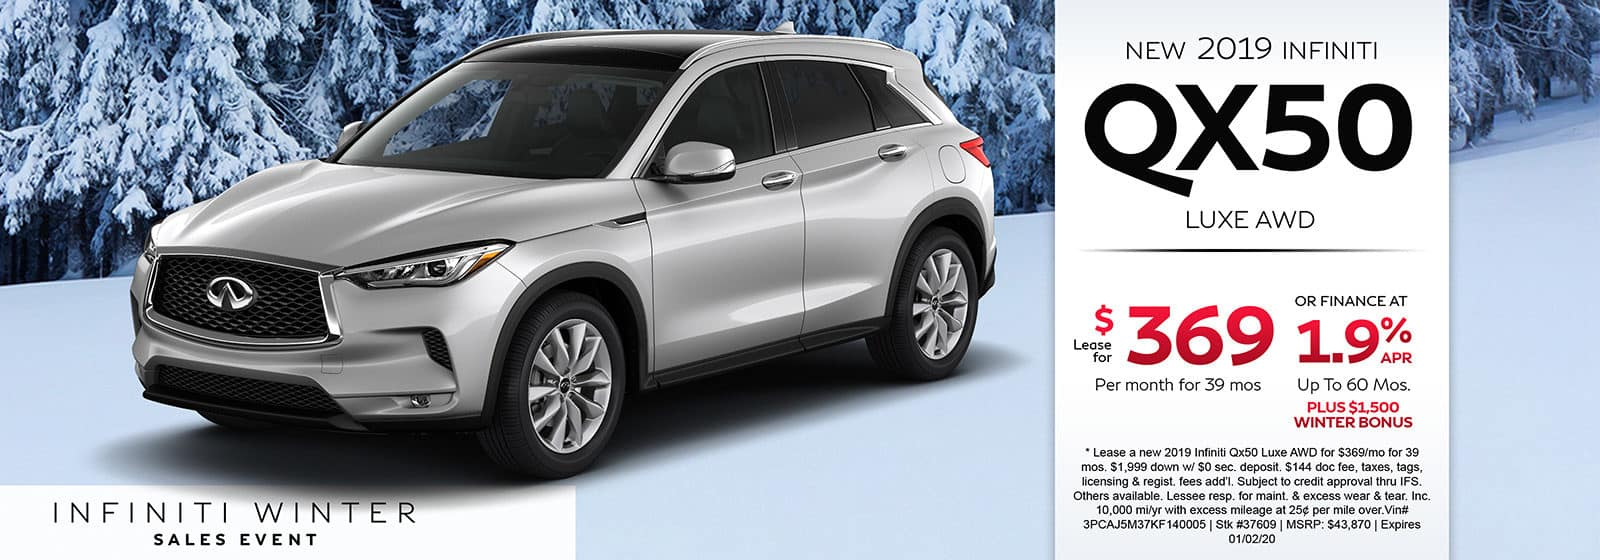 Lease a new 2019 INFINITI QX50 Luxe AWD for $369 a month for 39 months. Or get special 1.9% APR financing for up to 60 months